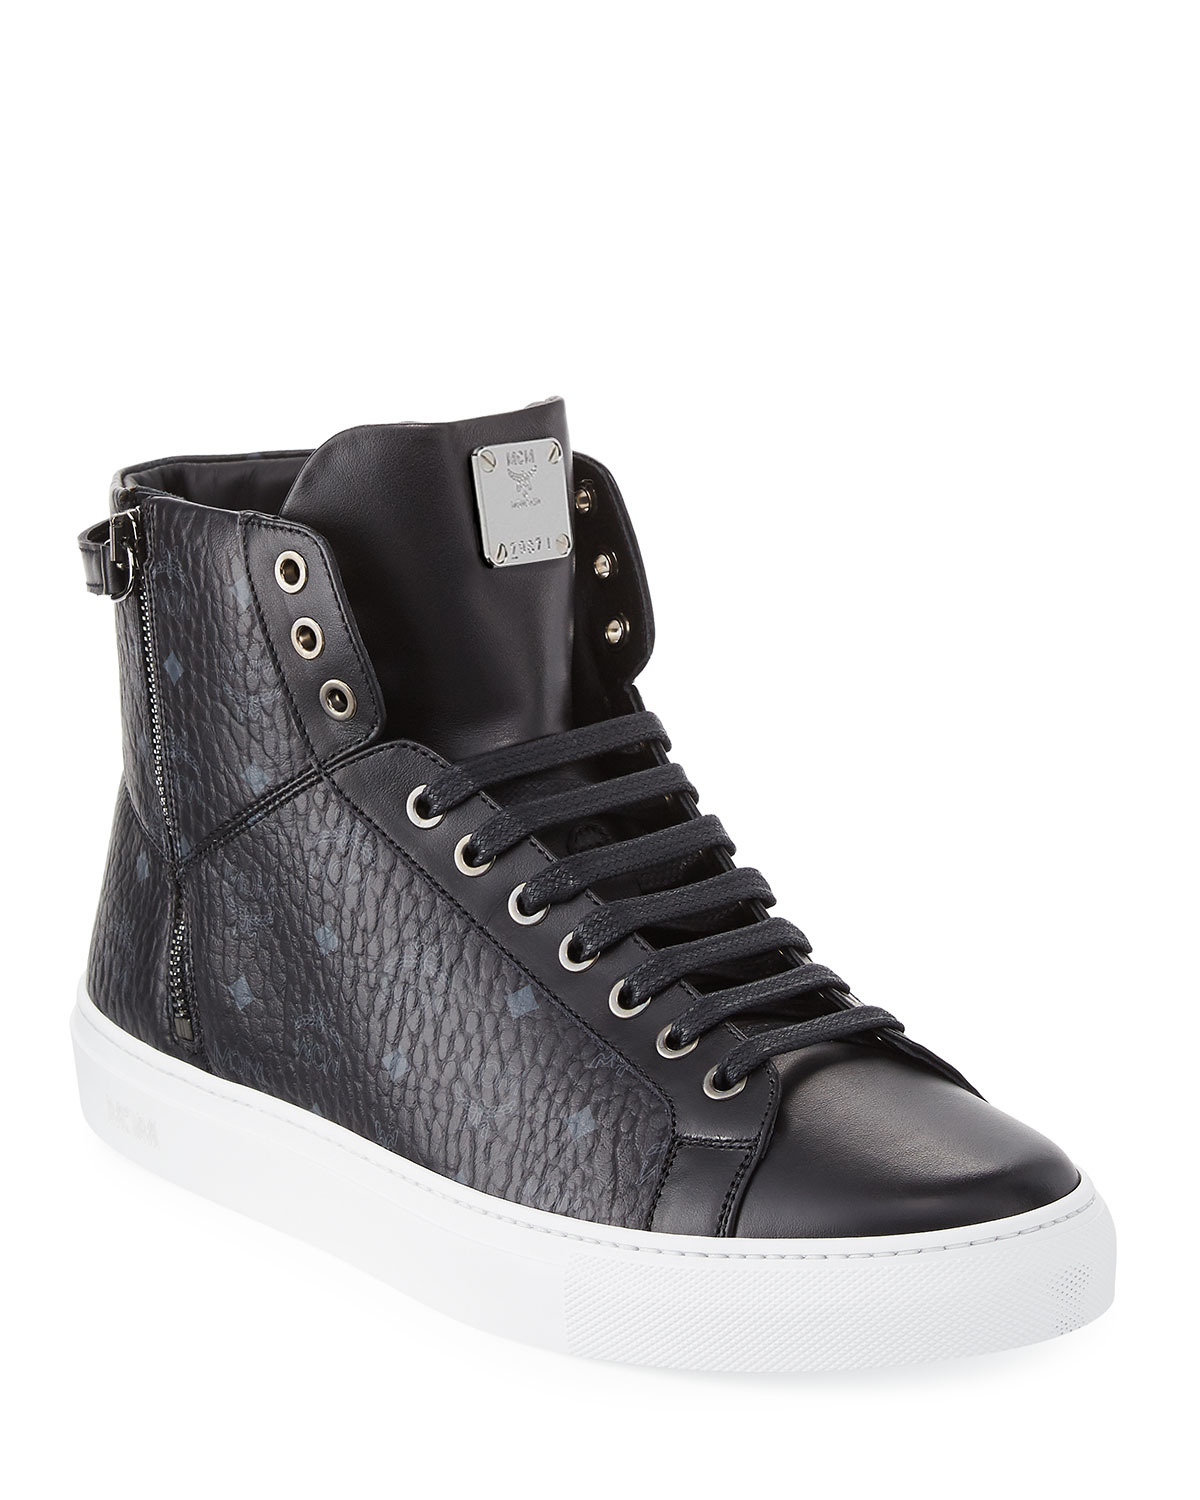 630fd986fc5 Men's Visetos High-Top Sneakers